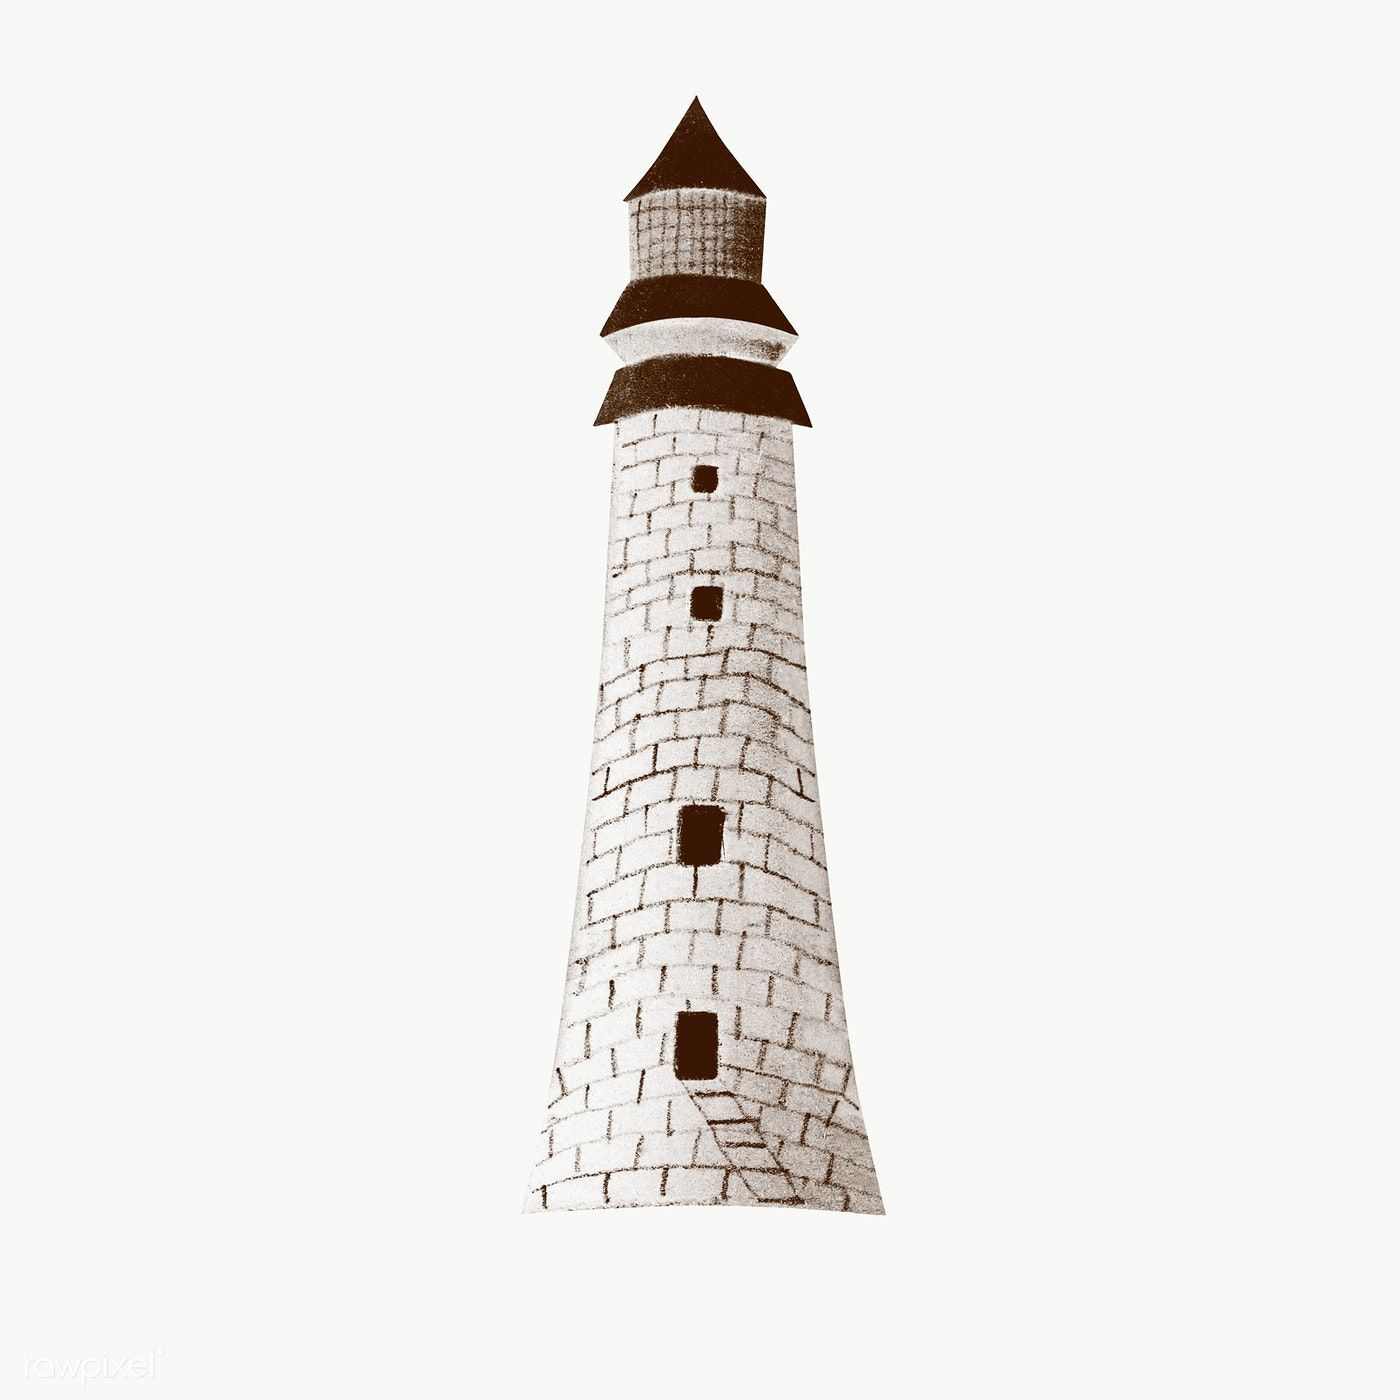 Eddystone Lighthouse Vintage Illustration Transparent Png Premium Image By Rawpixel Com Donlay Vintage Illustration Vintage Drawing Cleveland Museum Of Art